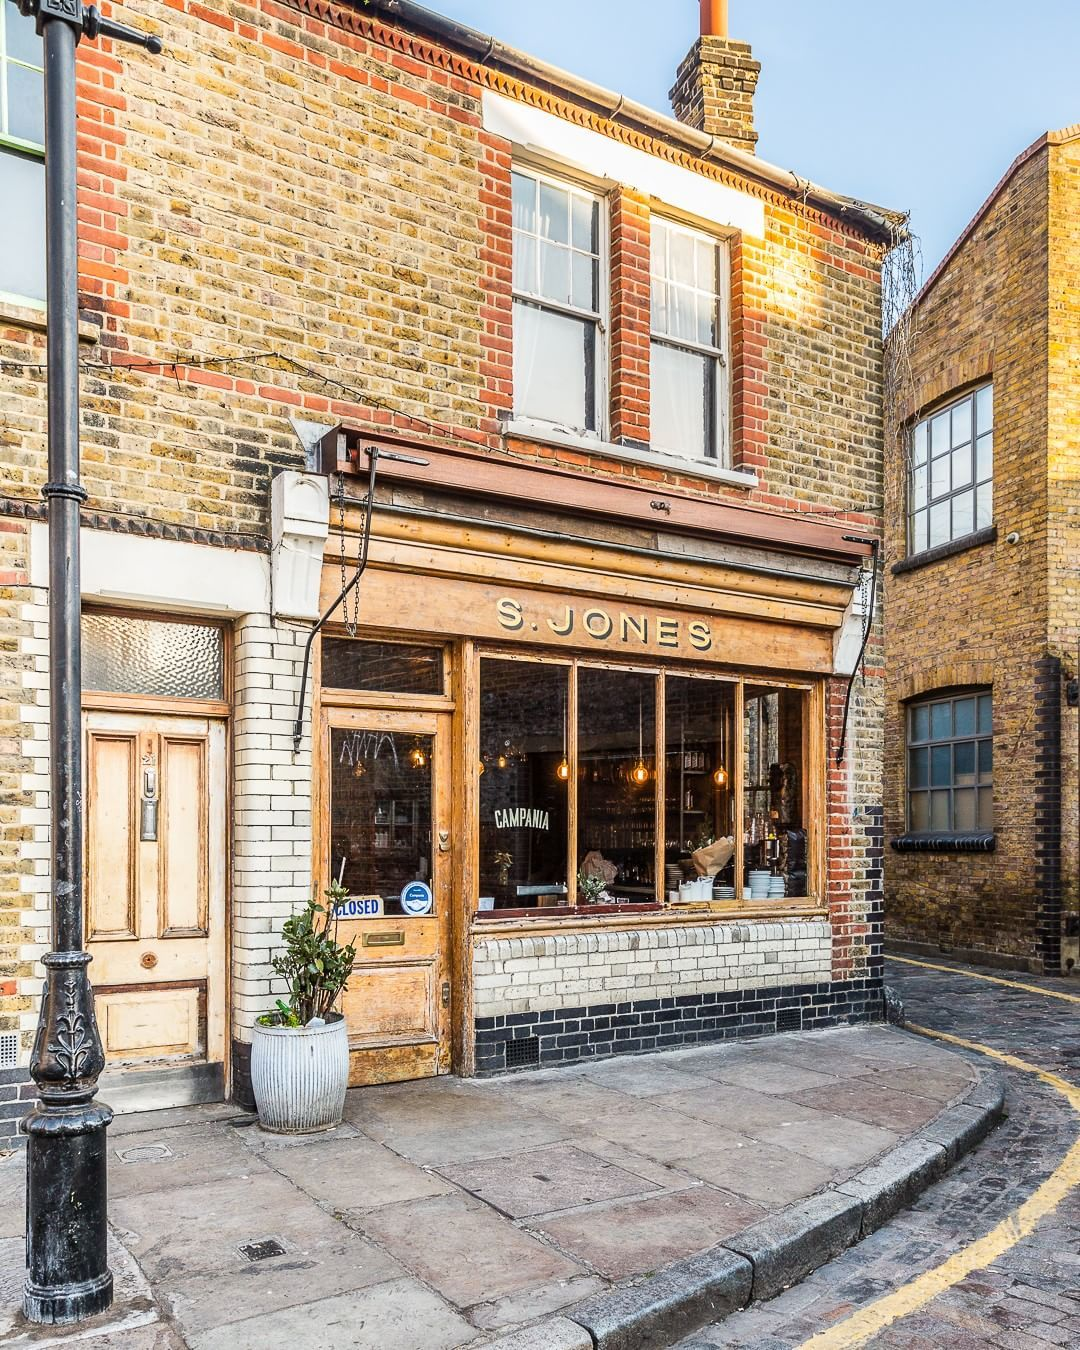 A Pretty Exposed Brick Facade On A Restaurant Near The Columbia Road Flower Market In London S Shoreditc Best Places In London London Places London Restaurants